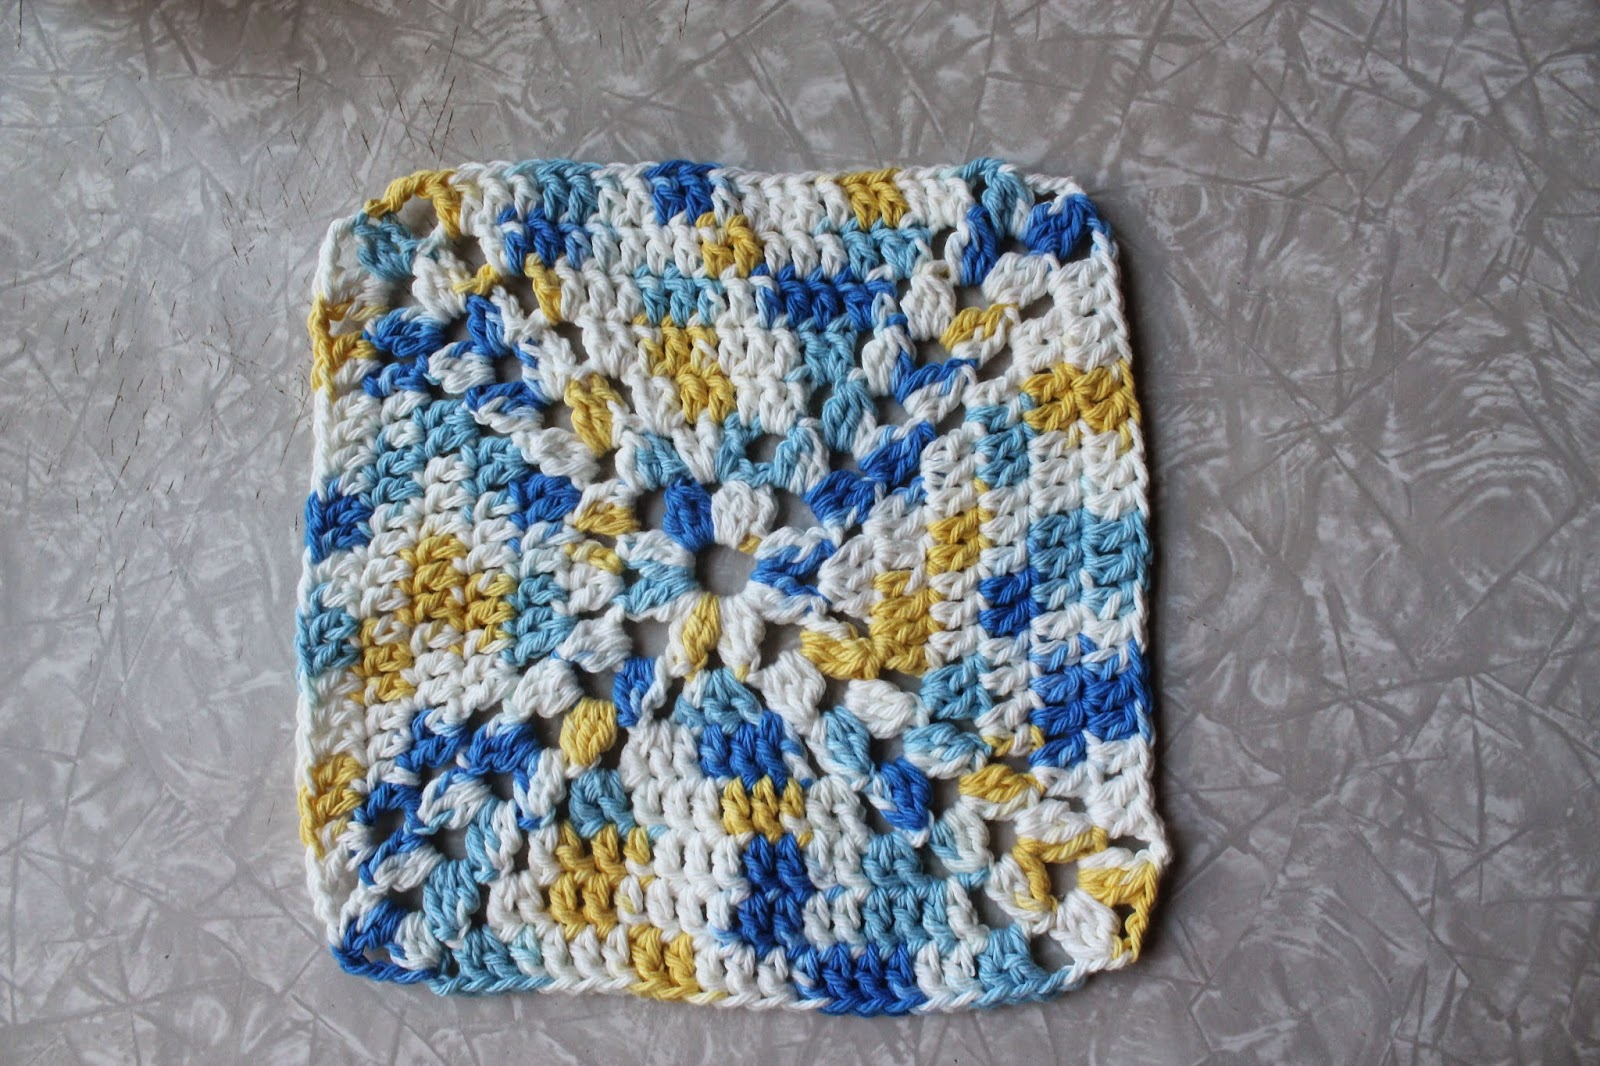 Crochet Granny Square Dishcloth Pattern : Everyday Life at Leisure: Weekly Dishcloth: Crocheting a ...